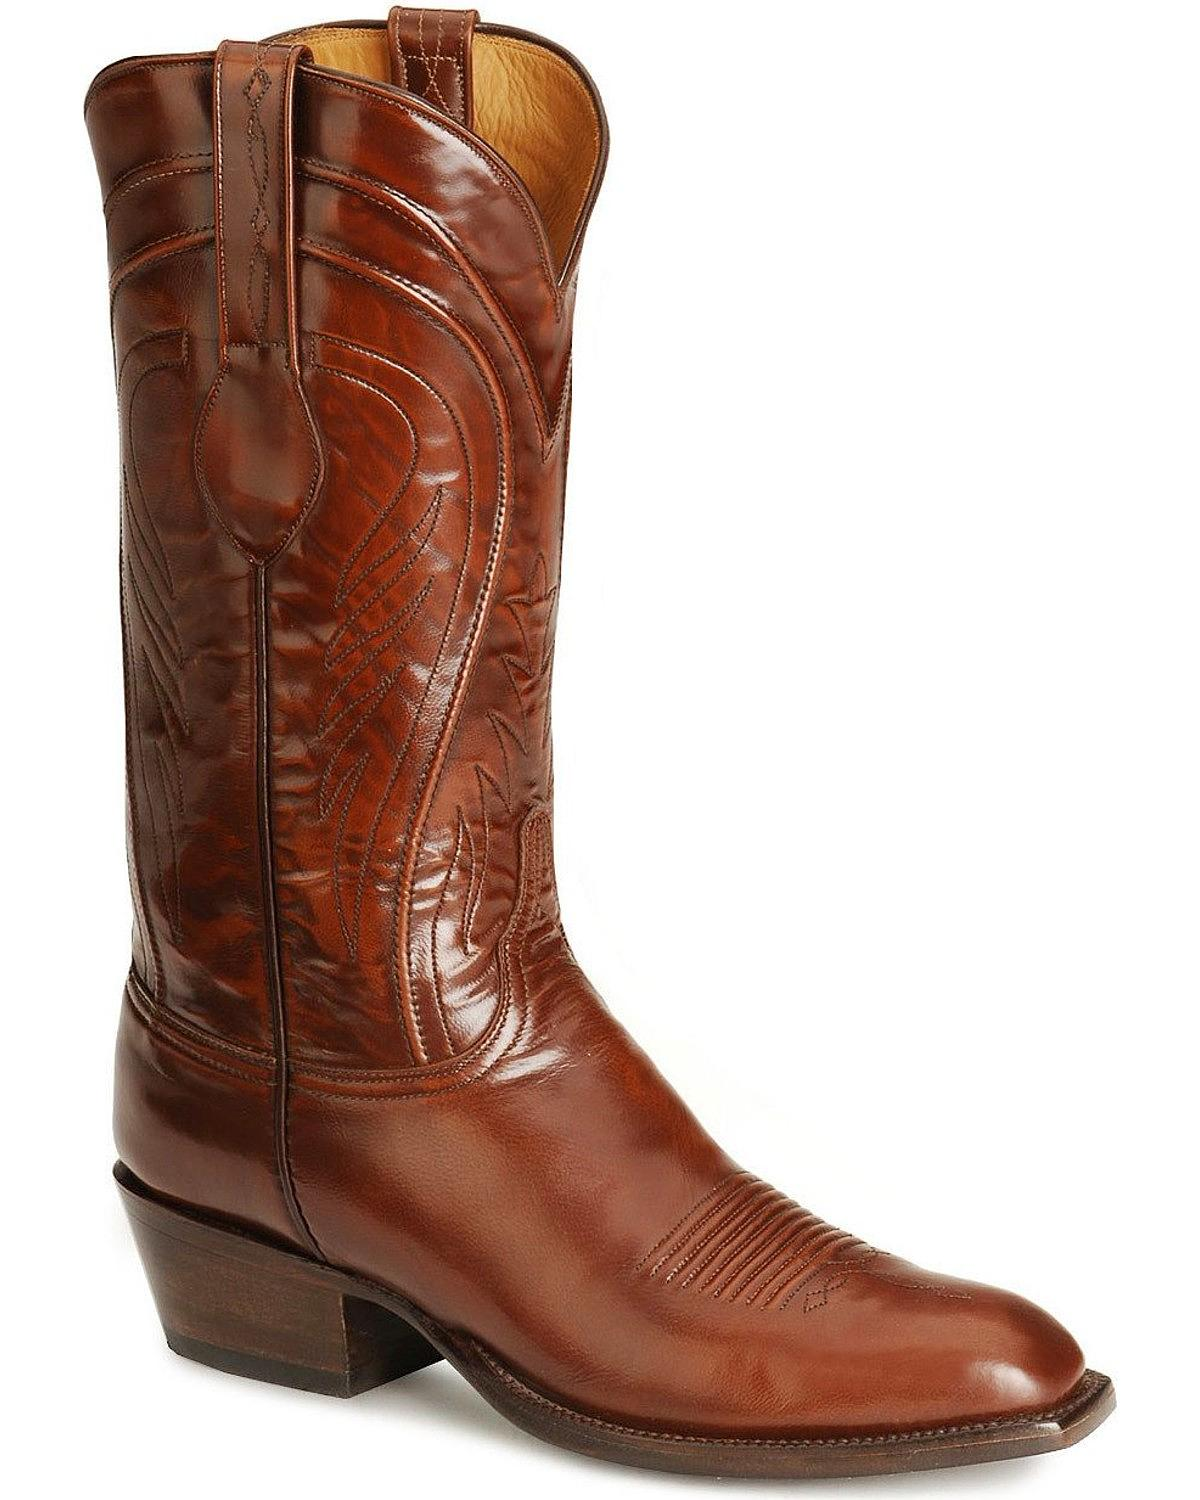 Sheplers Western Wear Cowboy Boots Free Shipping | Autos Post